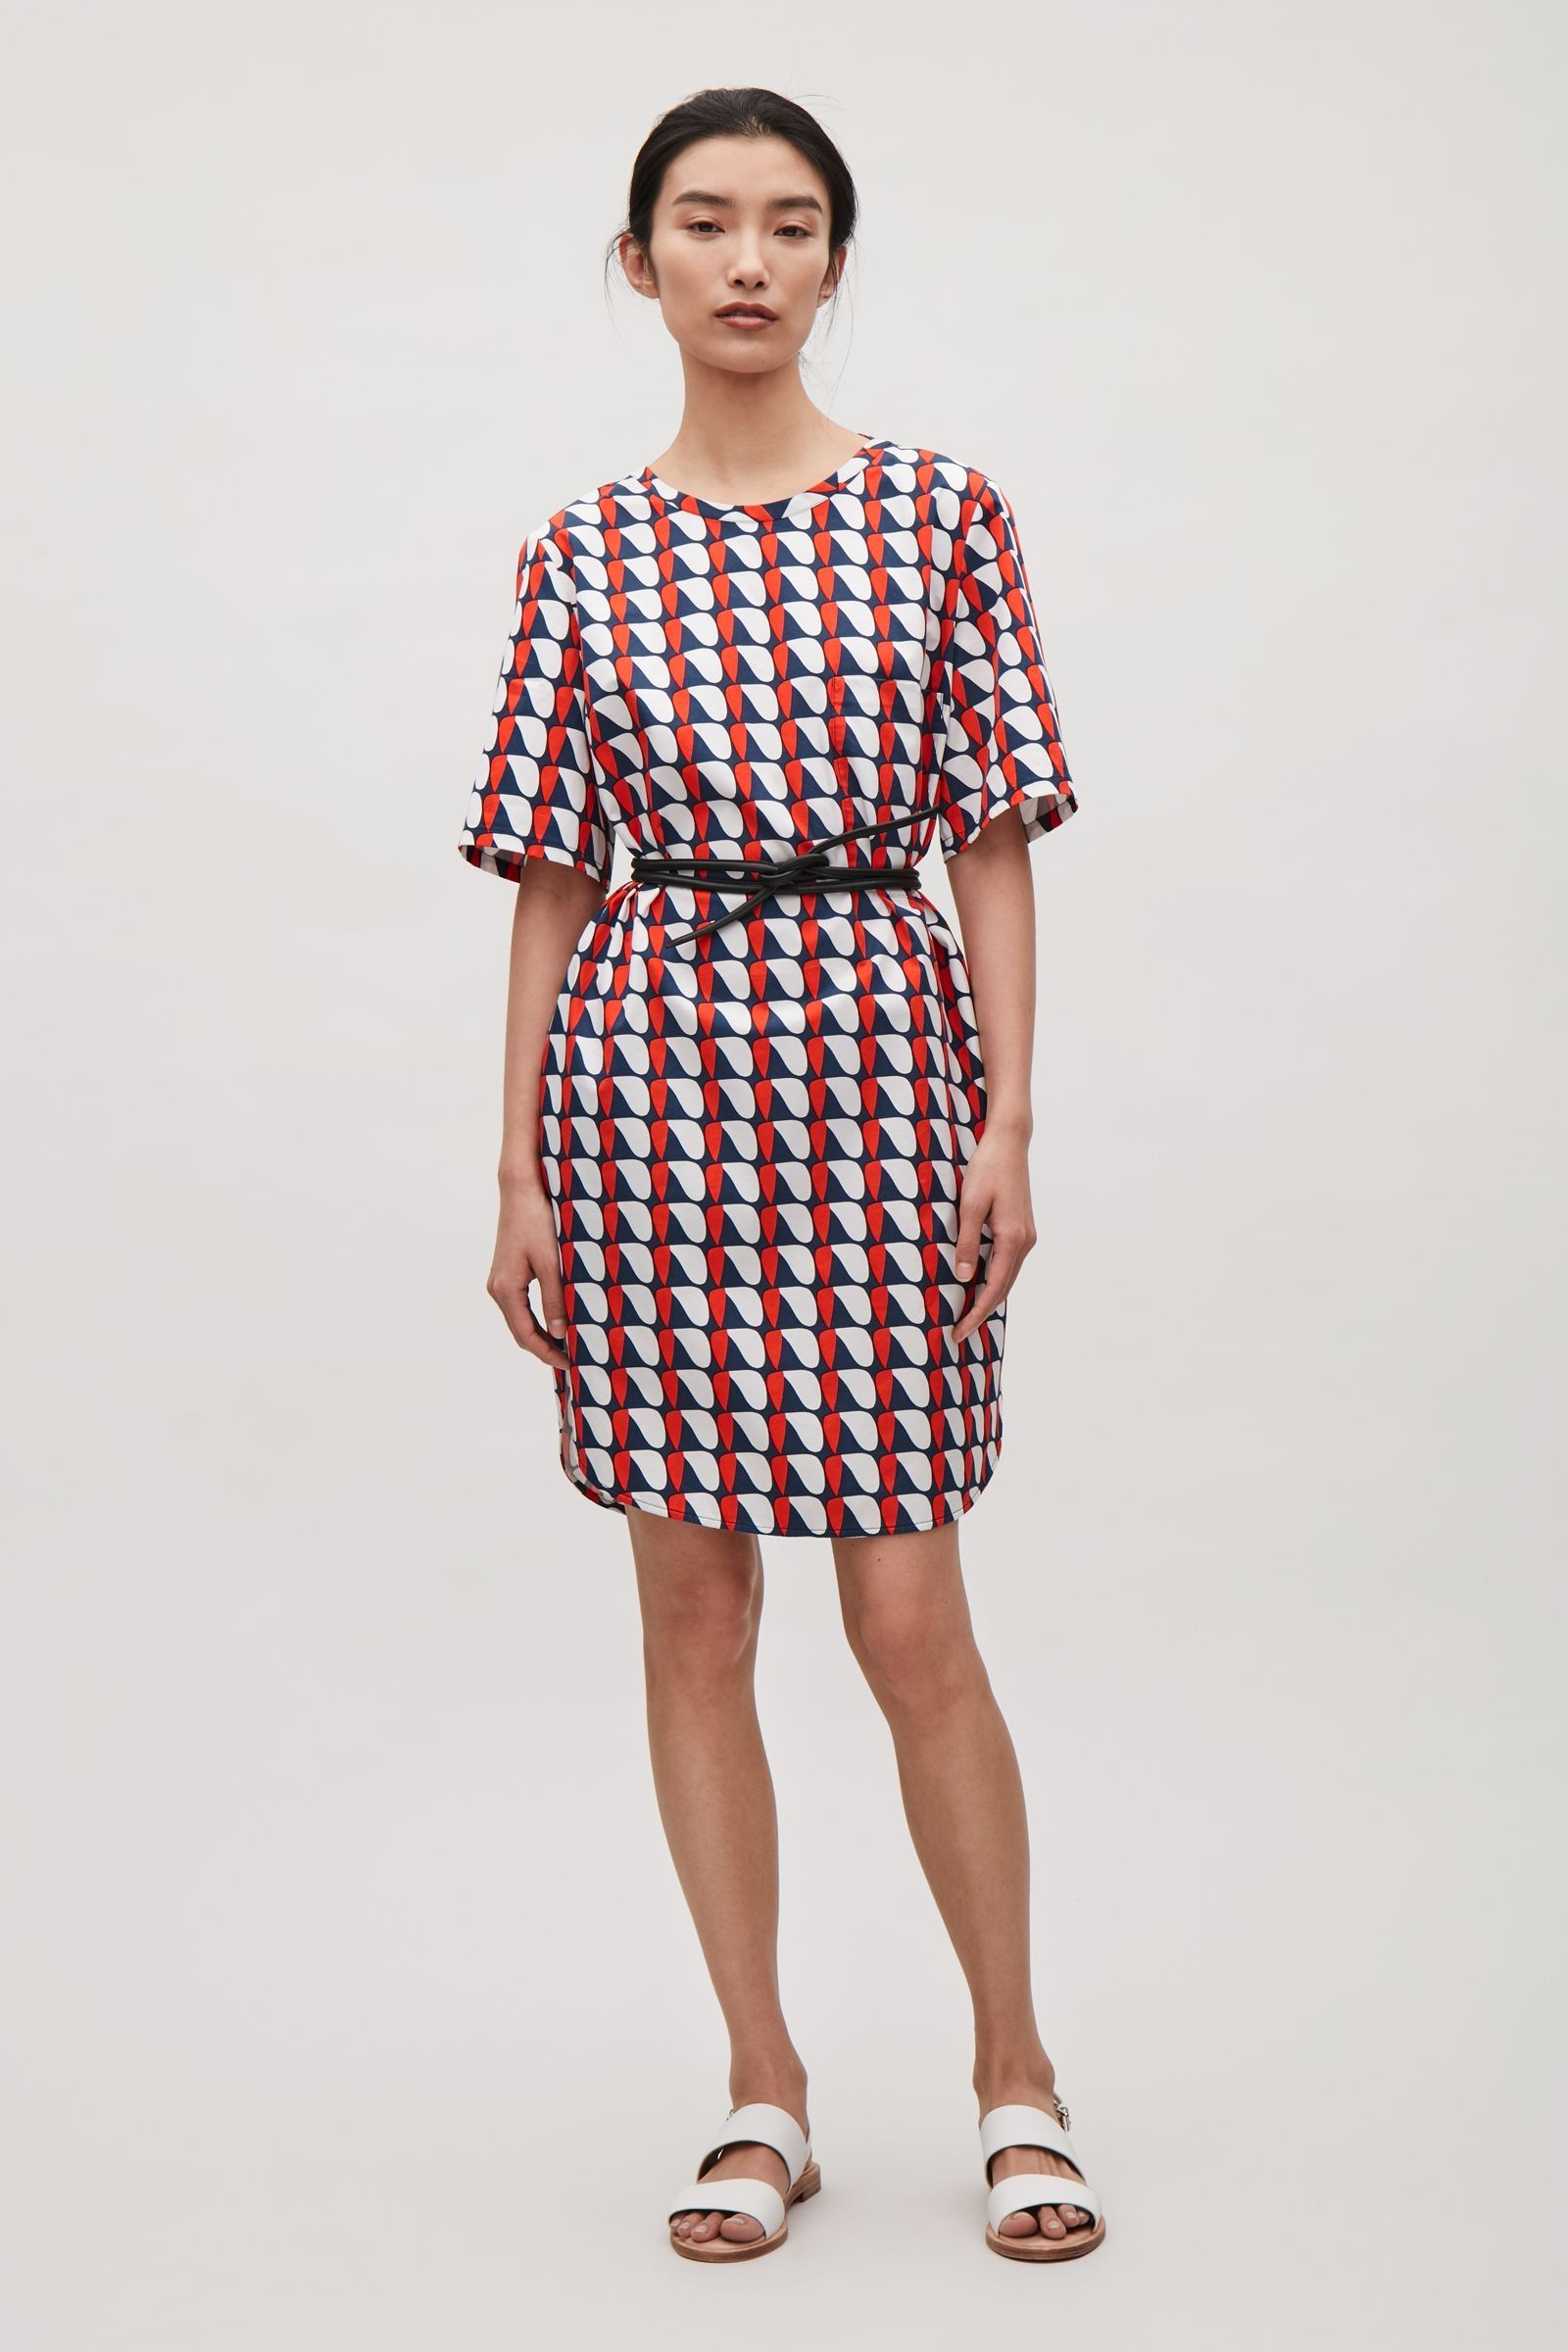 f76645446d COS image 1 of Oversized printed t-shirt dress in Red